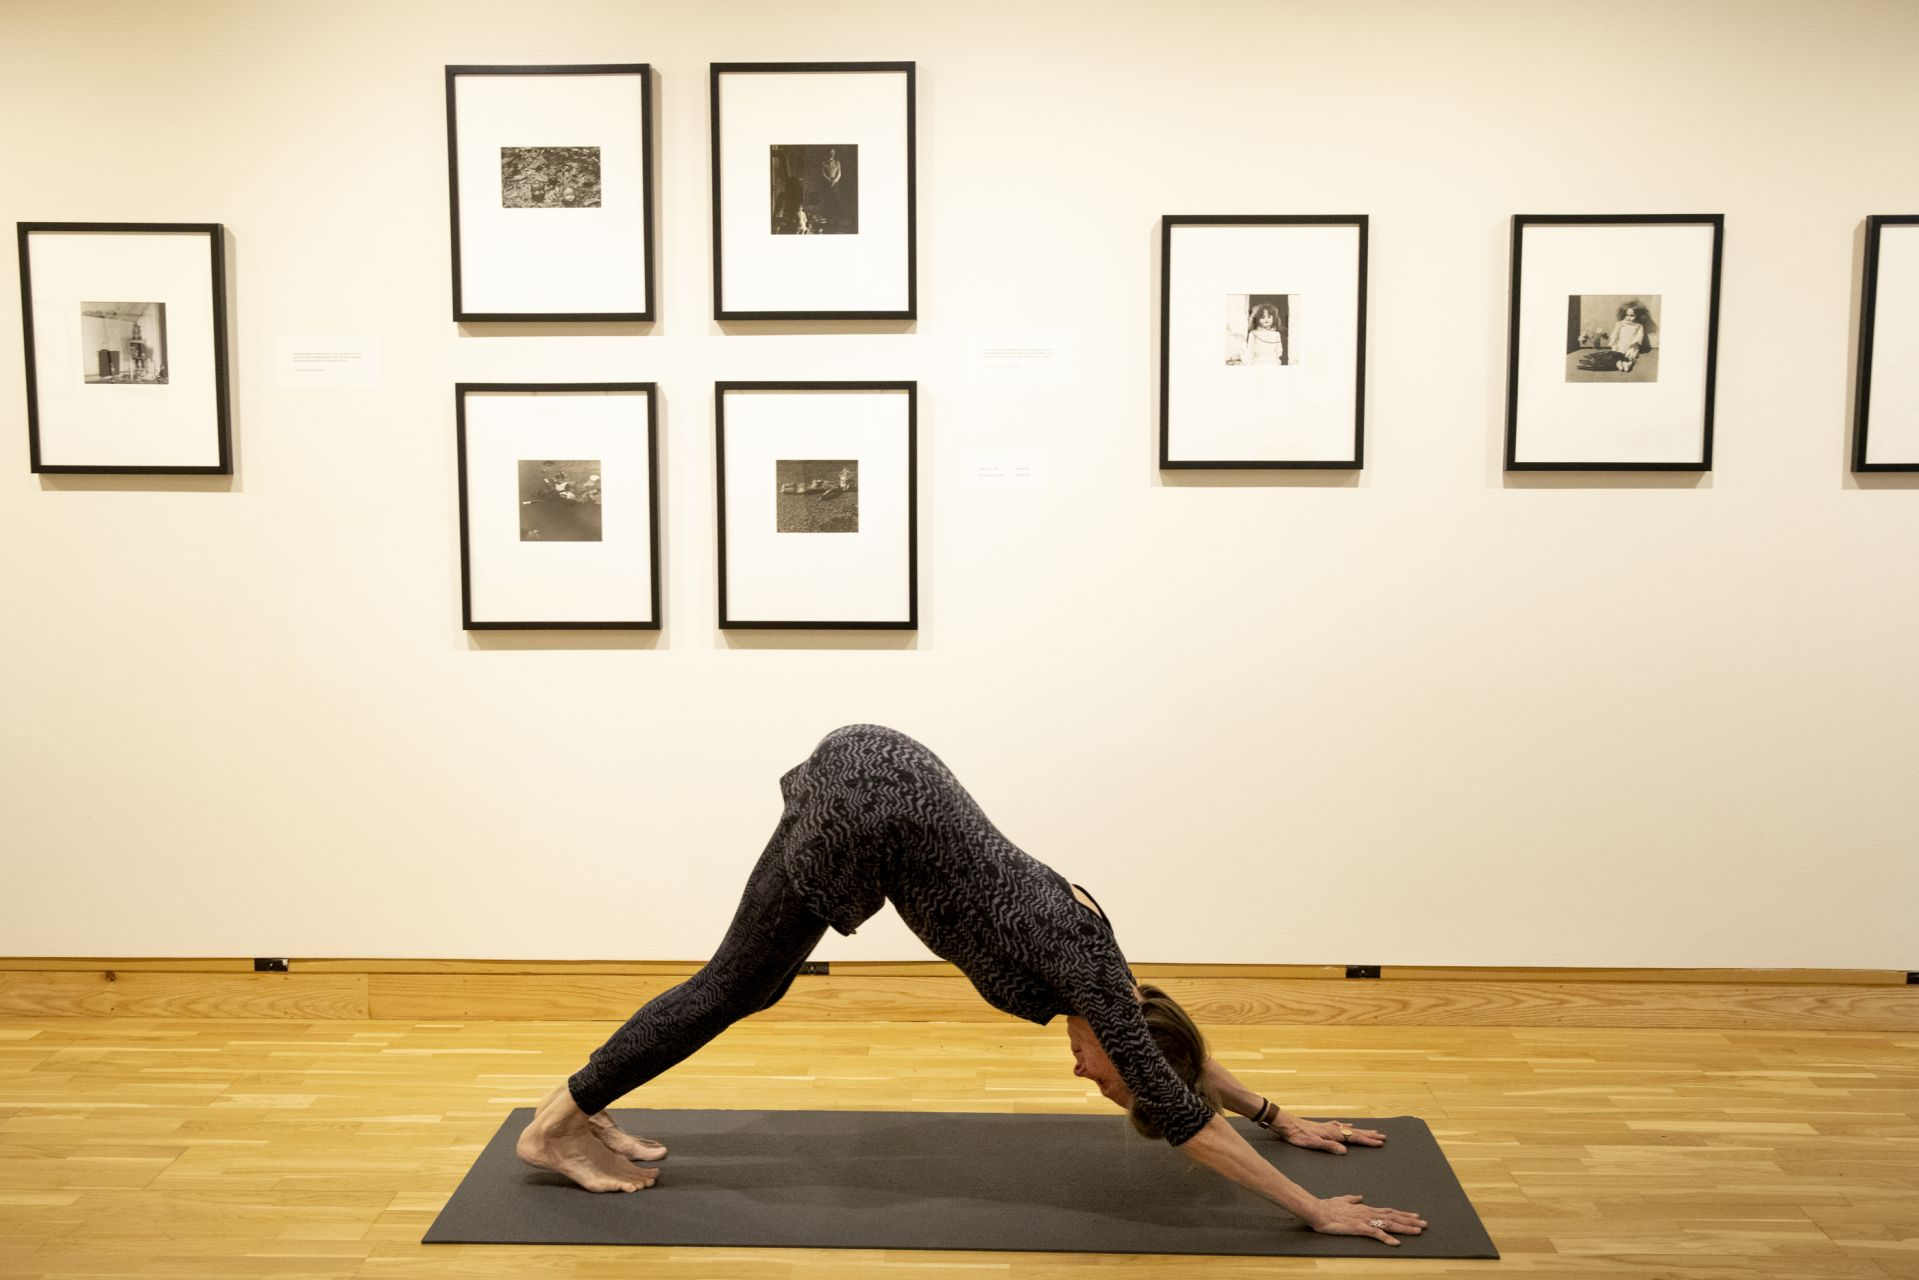 Olin Arts Center Heidi Sawyer teaches midday yoga class for faculty and staff in Museum's lower gallery.